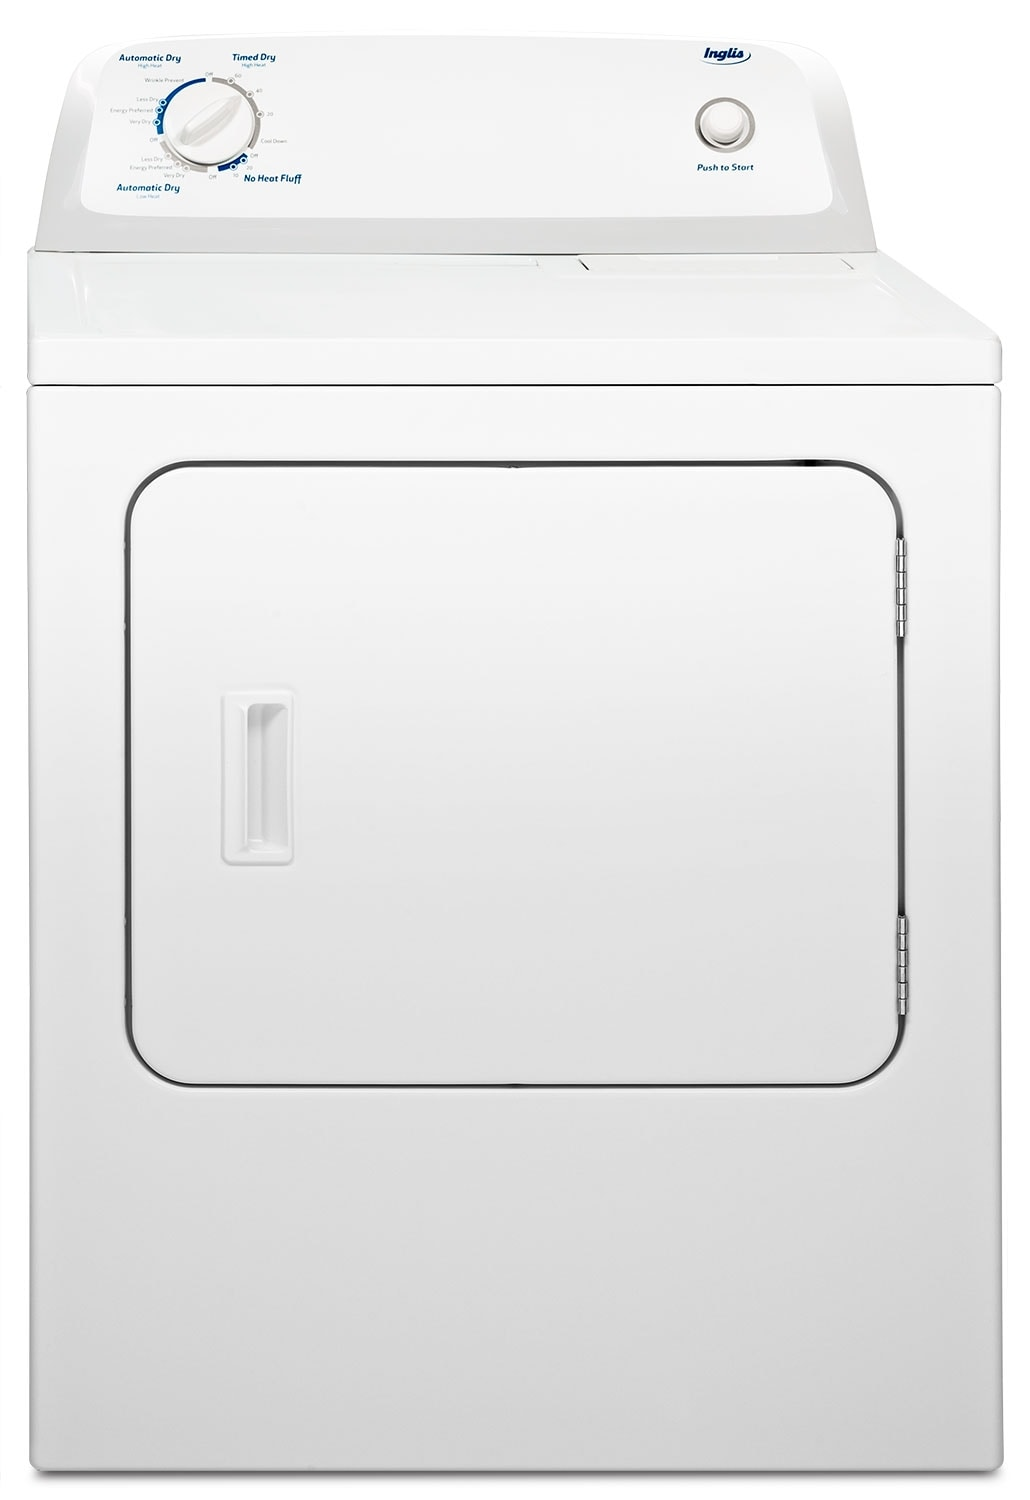 Inglis 6.5 Cu. Ft. Electric Dryer - White